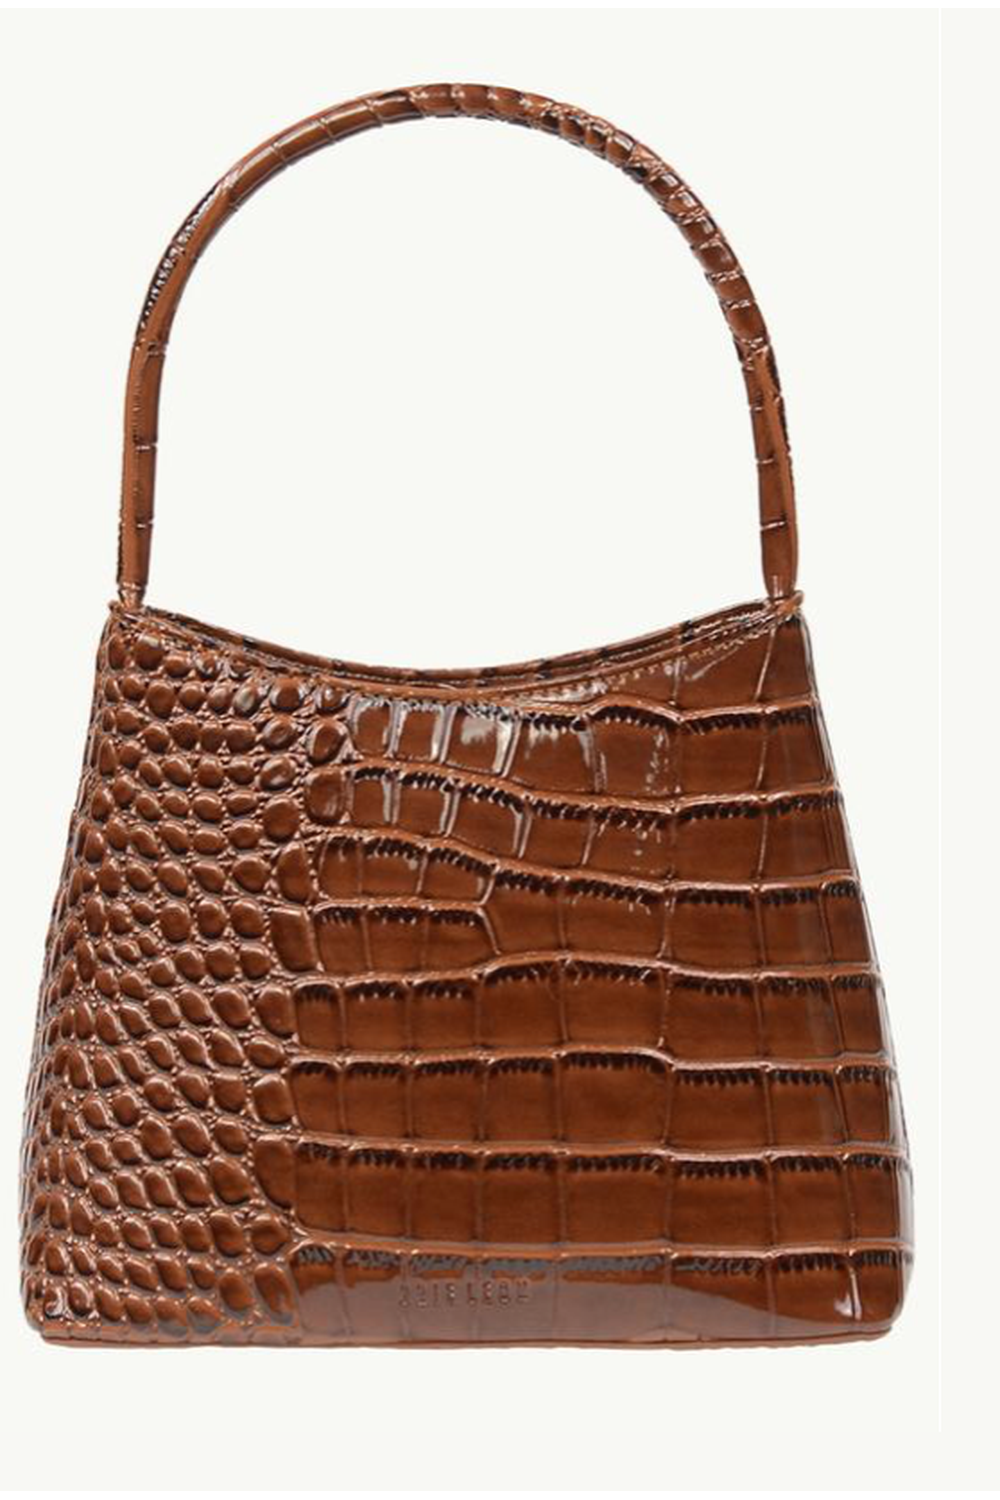 The Chloe Bag / Dark Brown Oily Croc | Brie Leon | Mad About The Boy